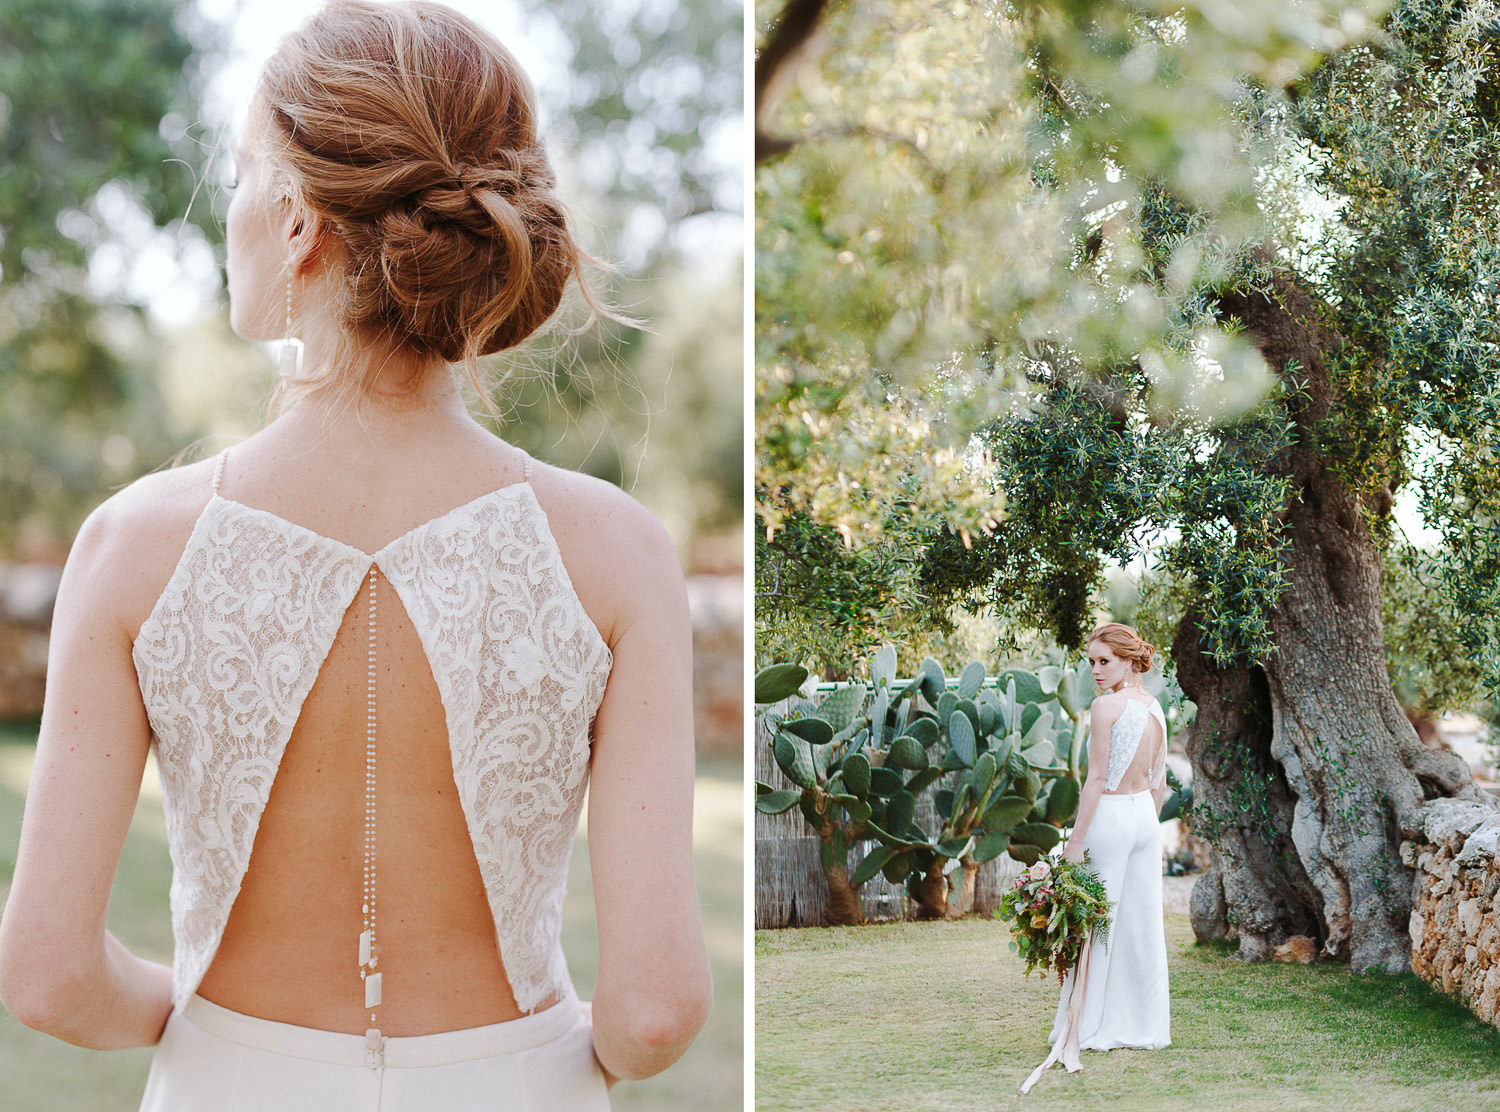 Romantic bride wears a delicate French lace top with jewel detail made by Silvia Valli Atelier - Photo: Camilla Anchisi